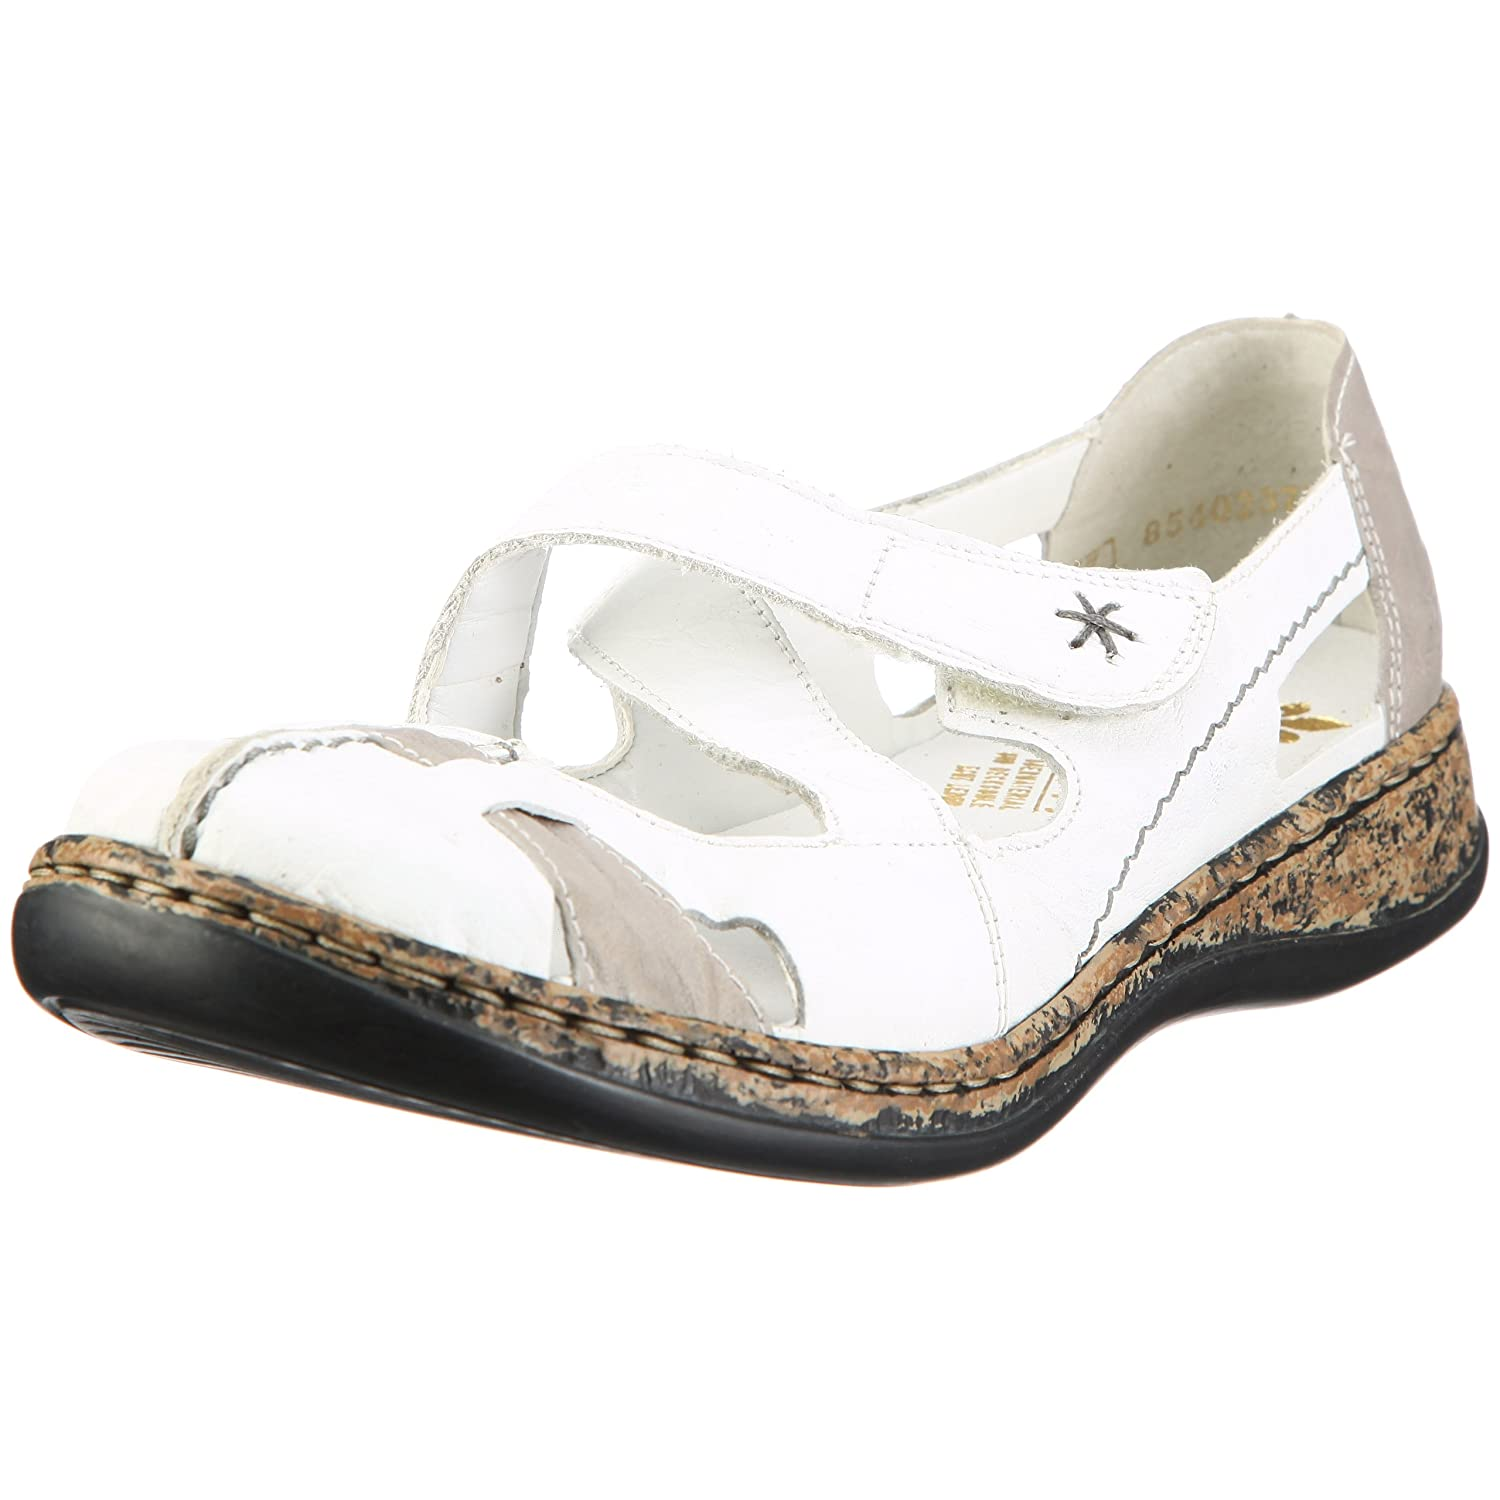 Magasin chaussure aschbach - Magasin chaussure amiens ...